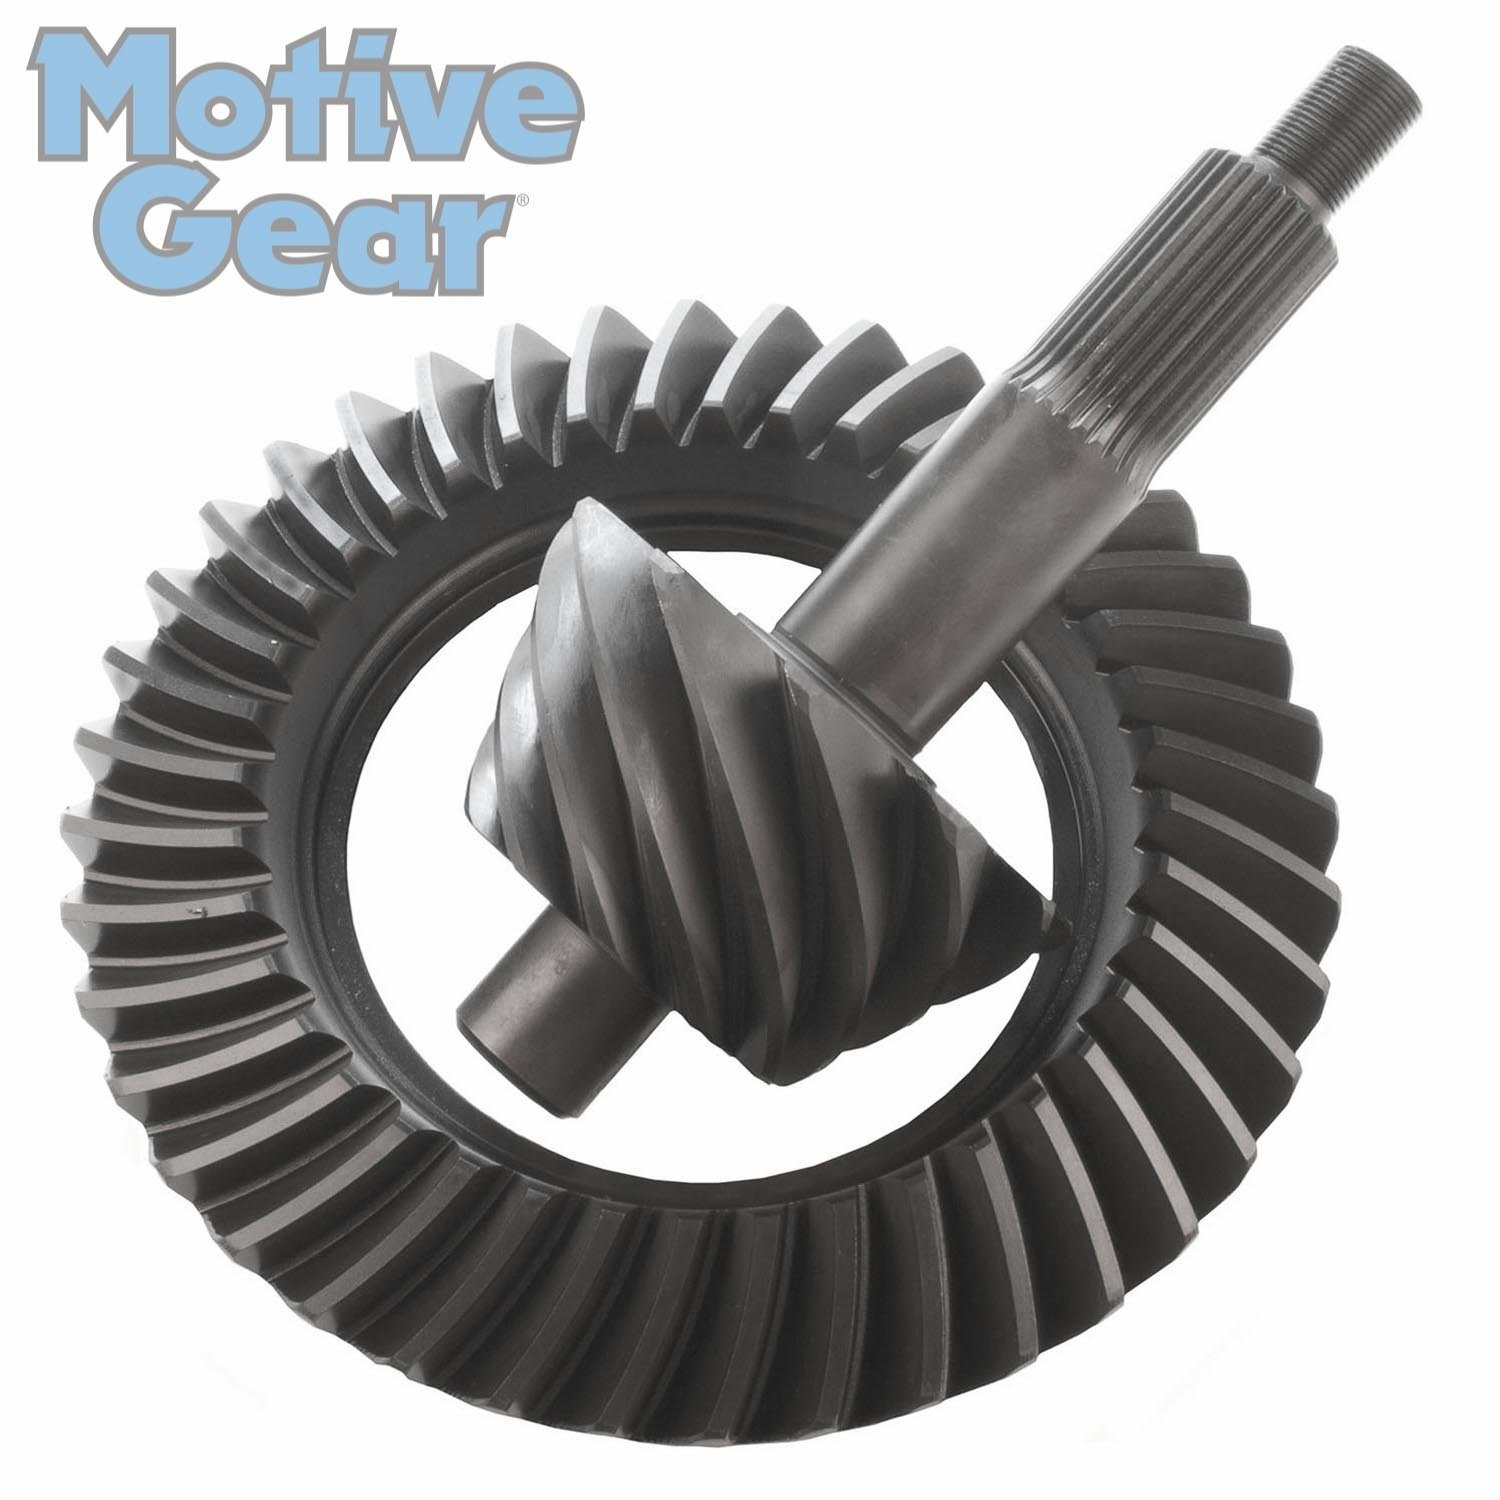 Motive Gear F890430 9 Rear Ring and Pinion for Ford 4.30 Ratio